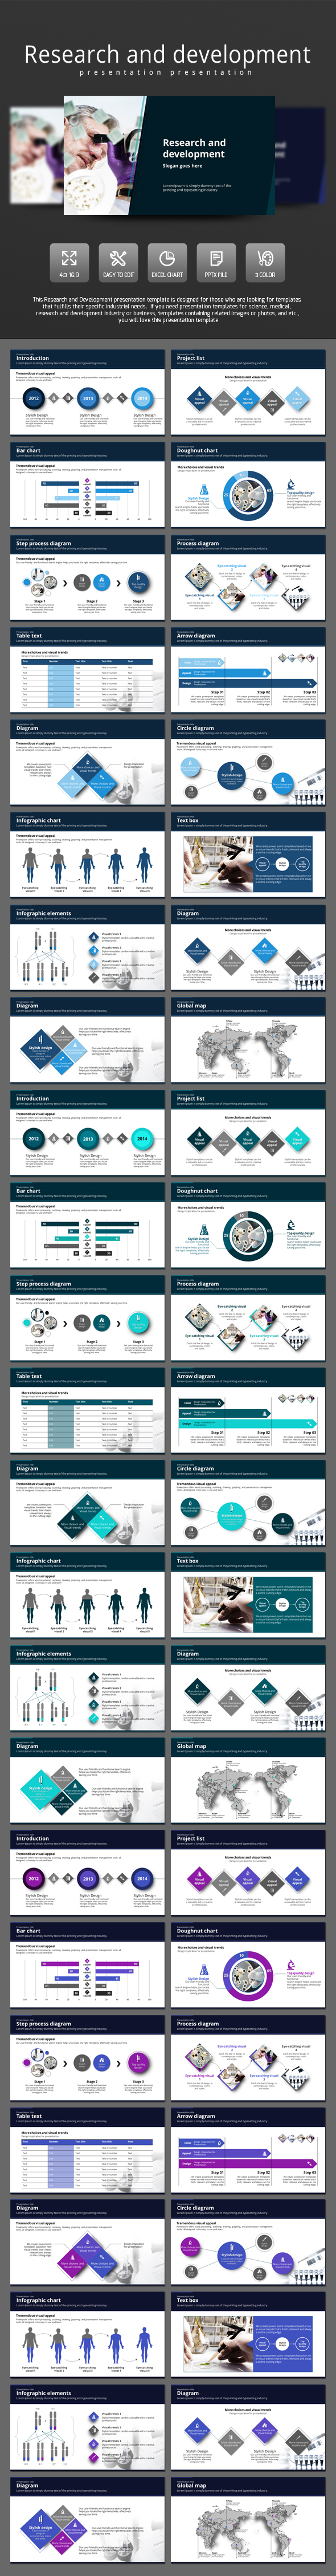 Research and Development - PowerPoint Templates Presentation Templates